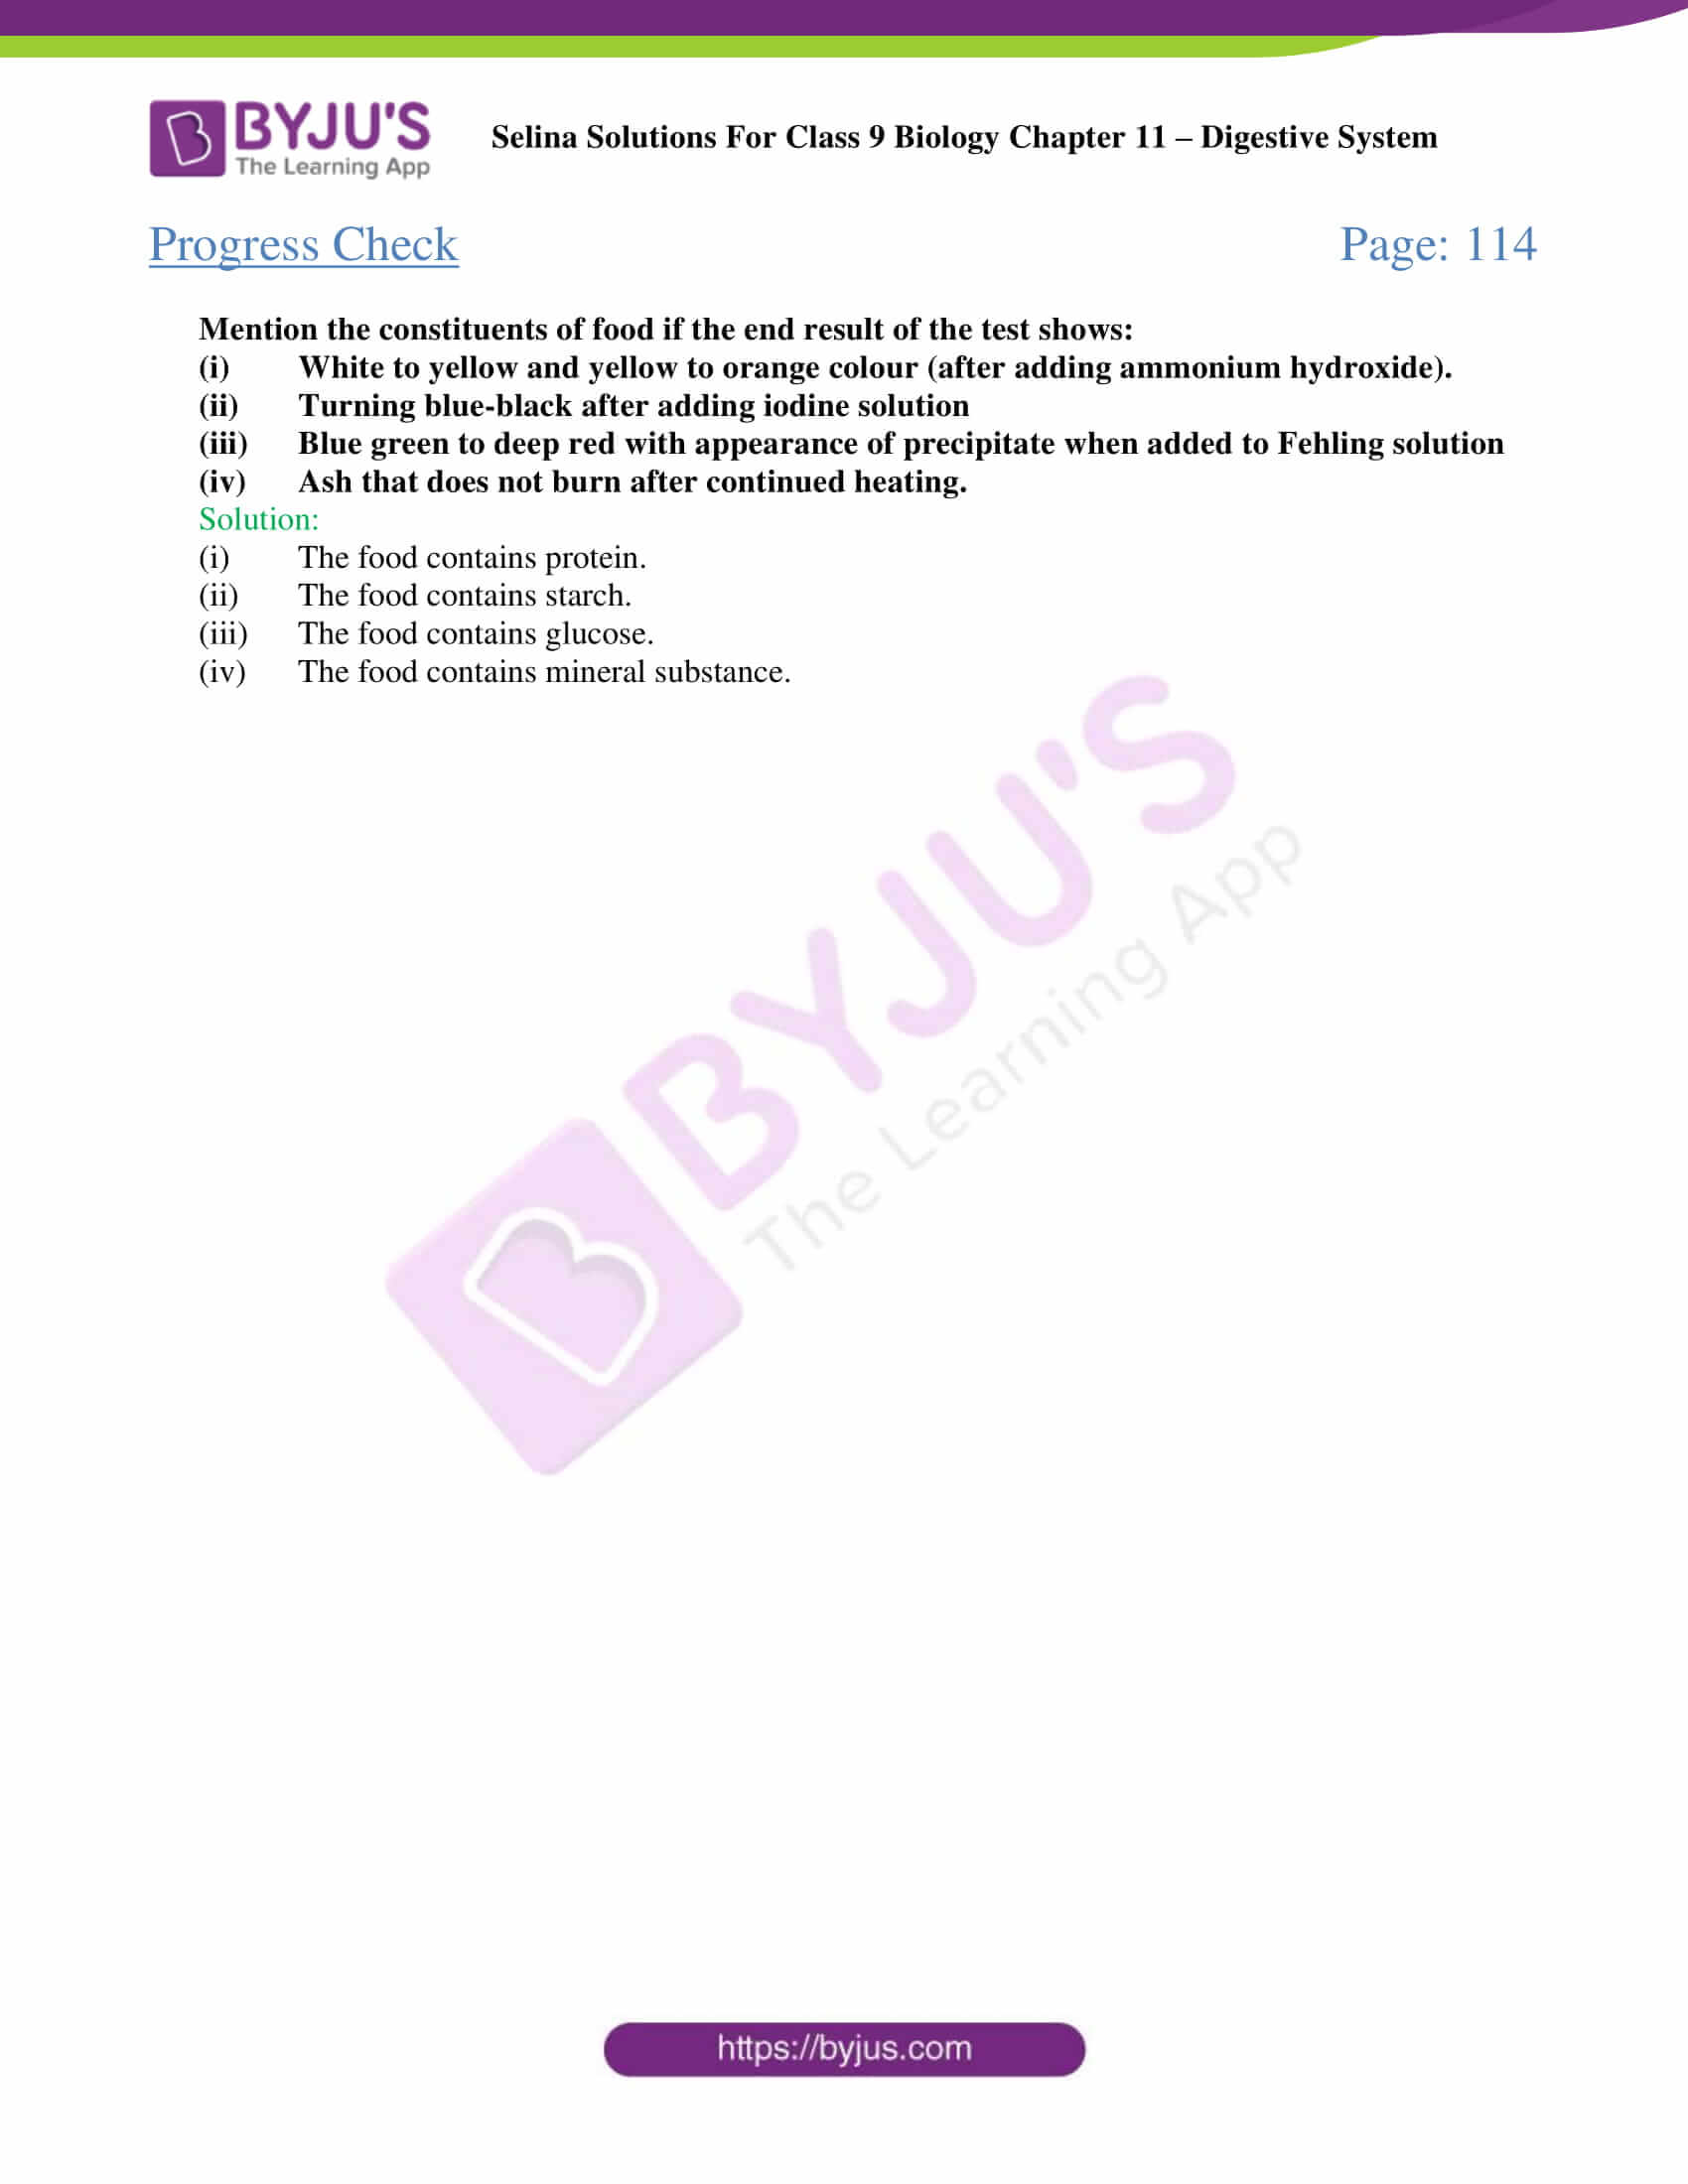 selina Solutions For Class 9 Biology Chapter 11 part 05